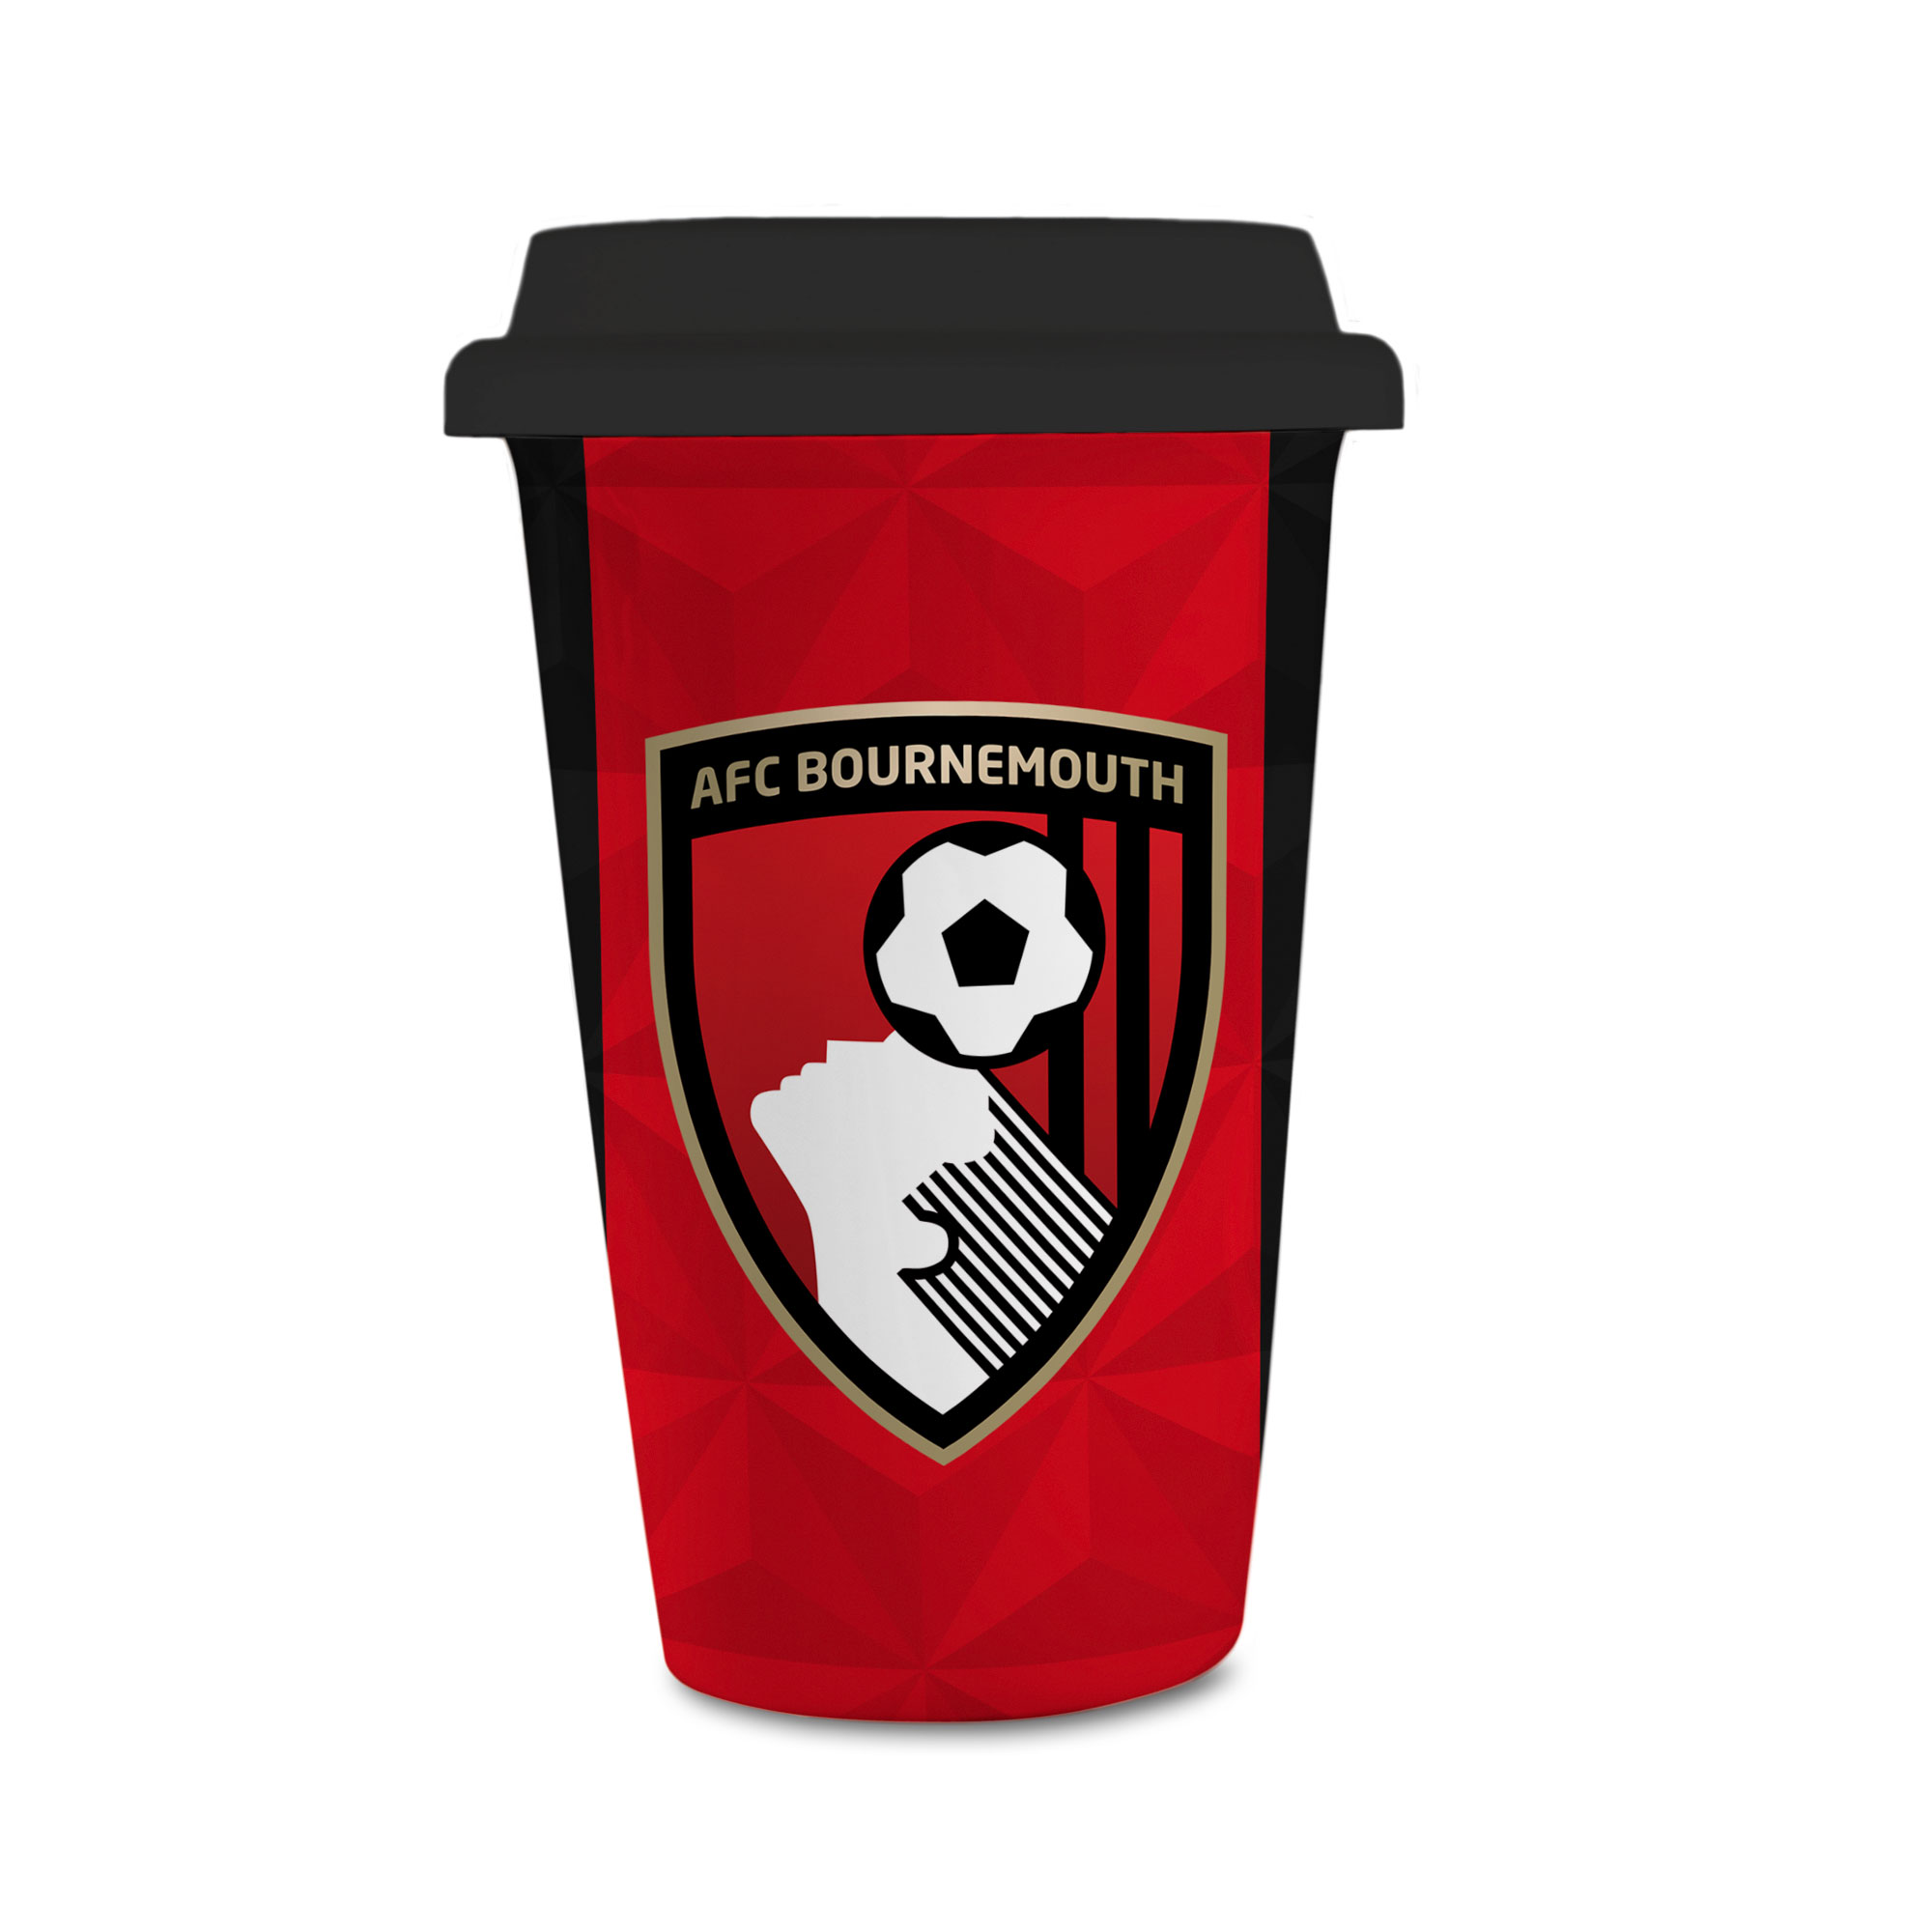 AFC Bournemouth Crest Reusable Cup